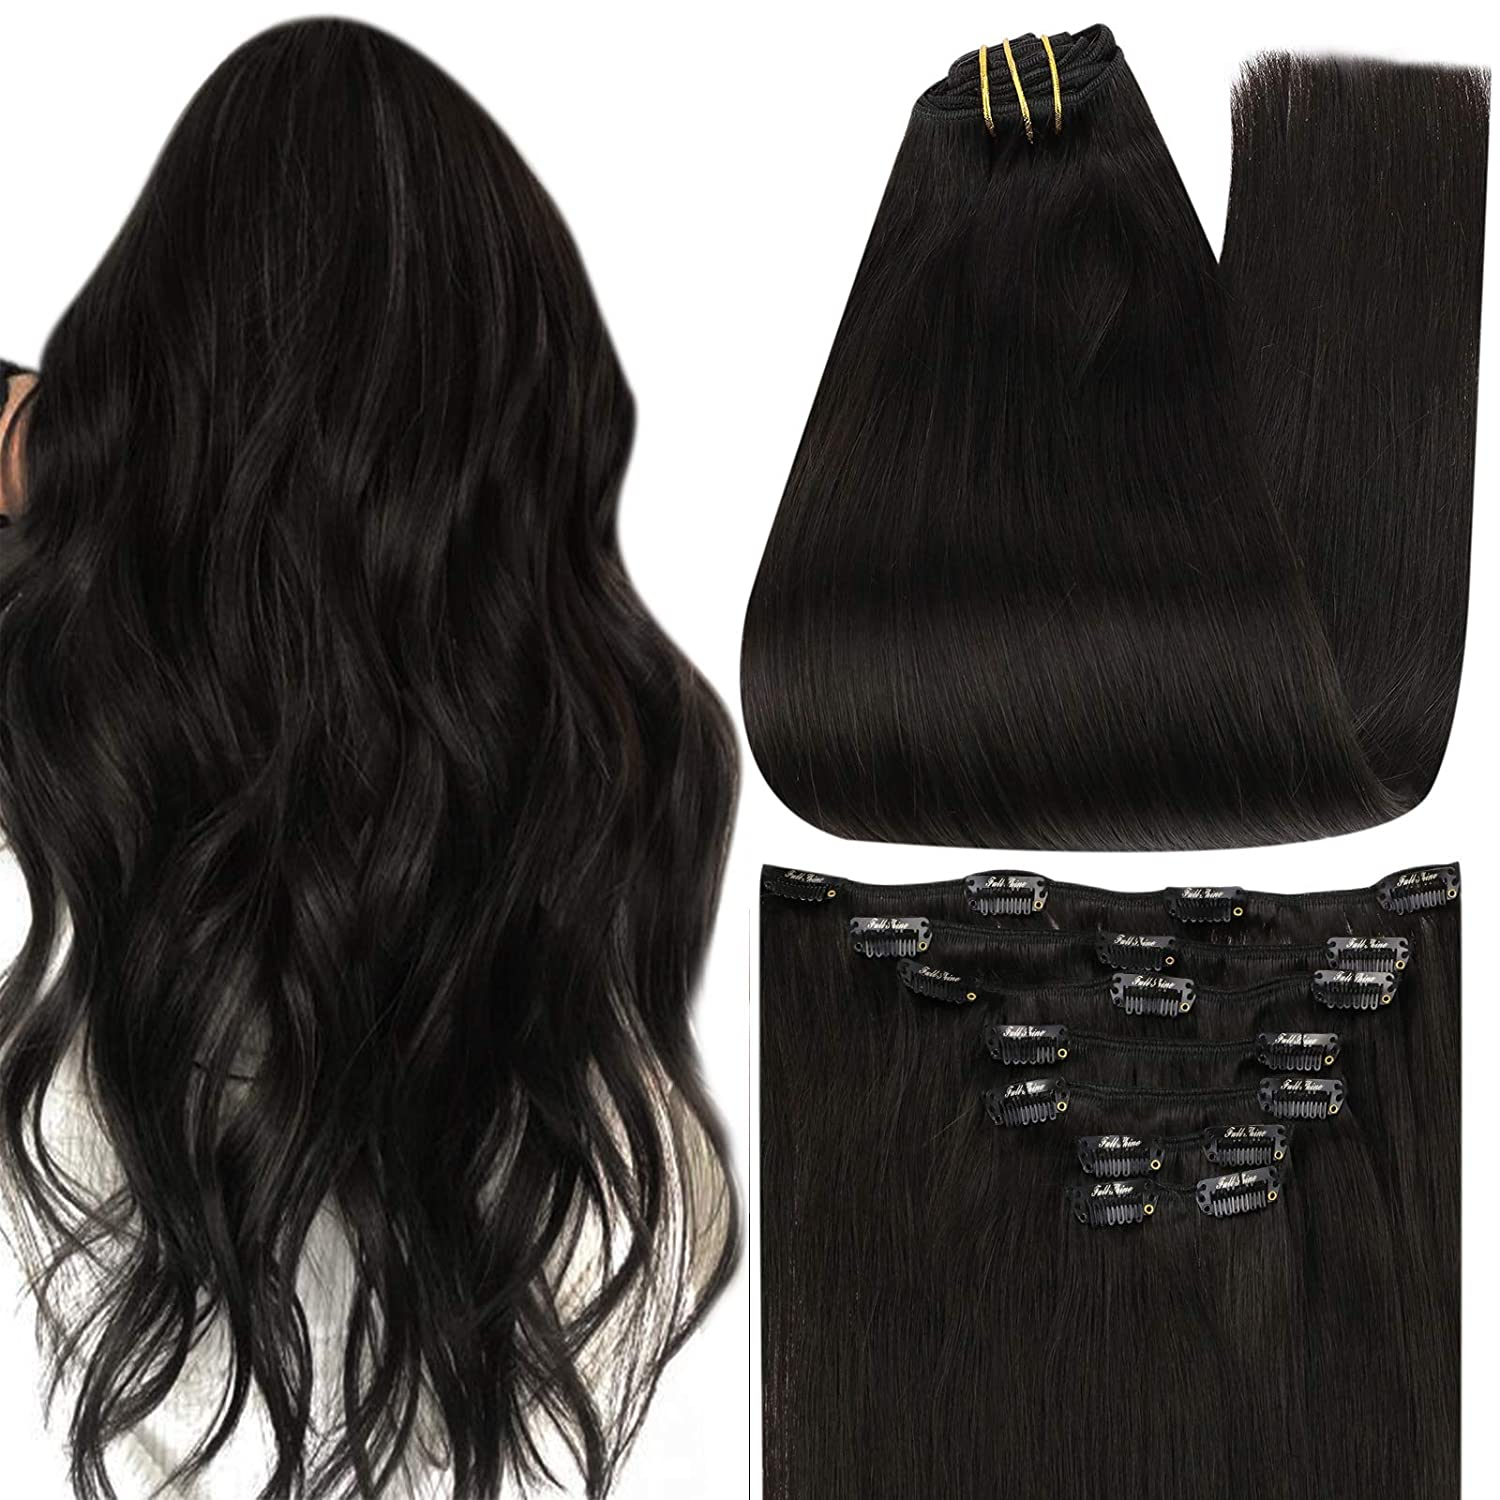 Hair Extensions for immediate volume and length to any hair type